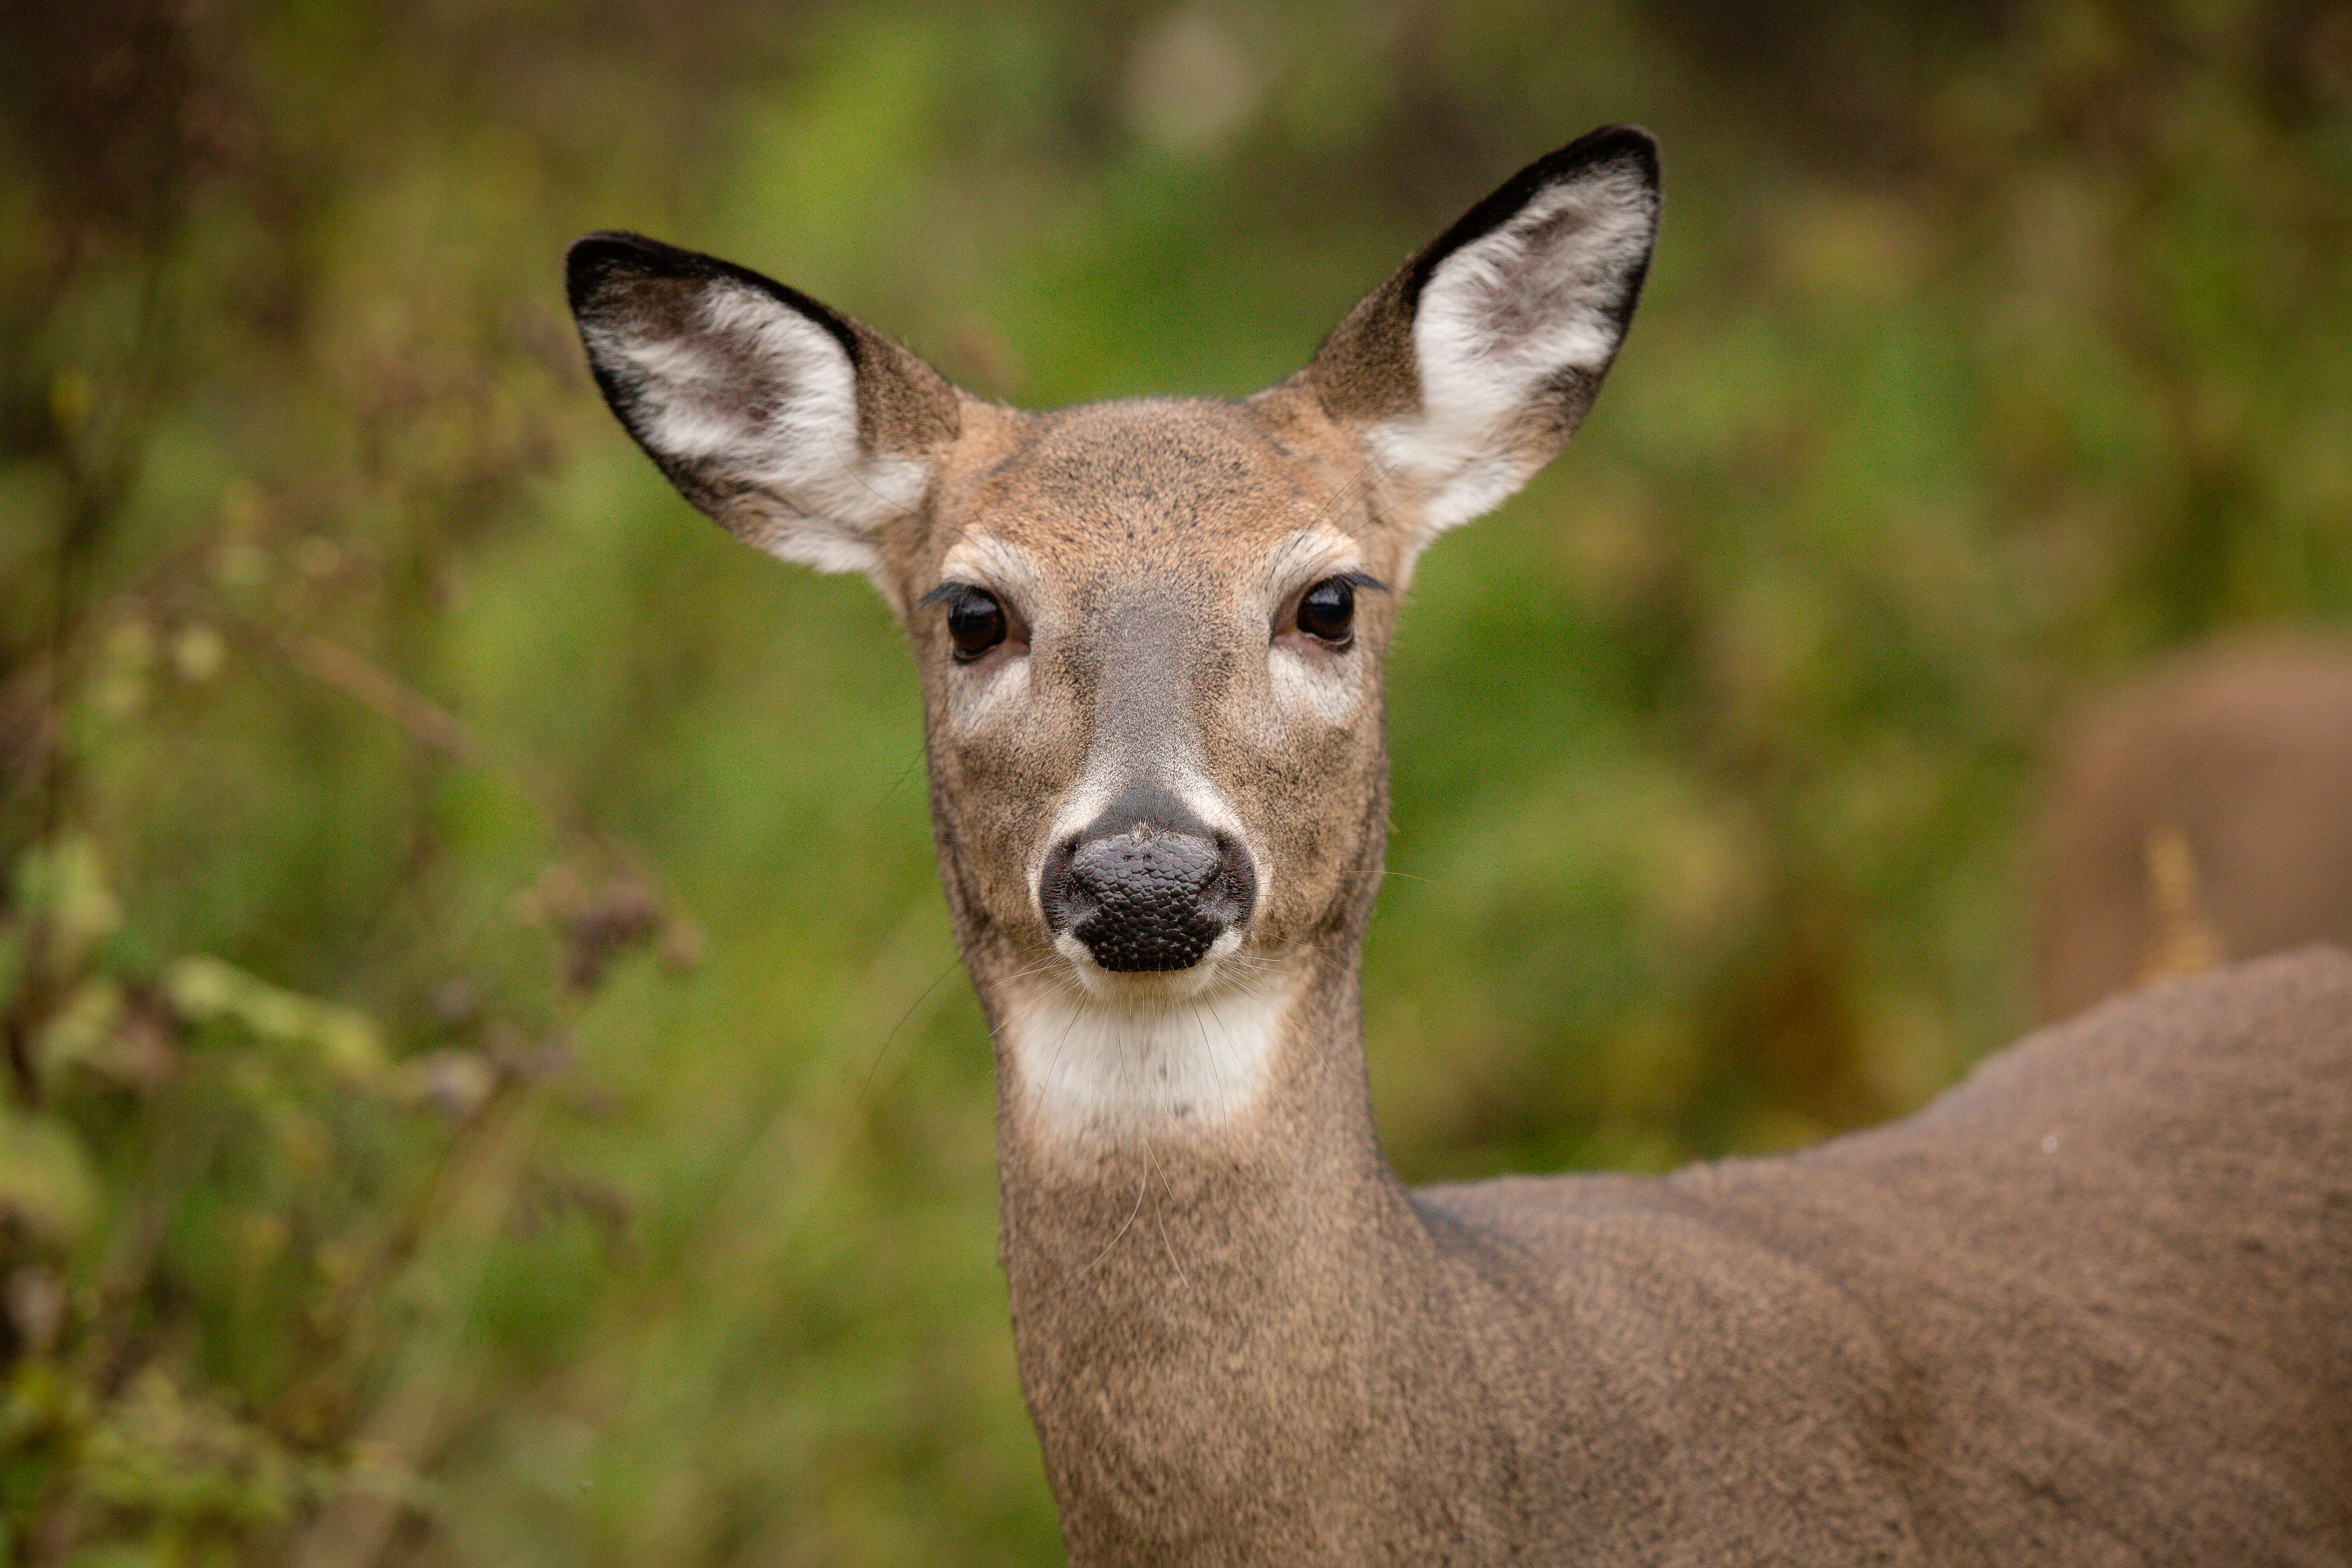 doe see doe at big meadows emily carter mitchell nature as art